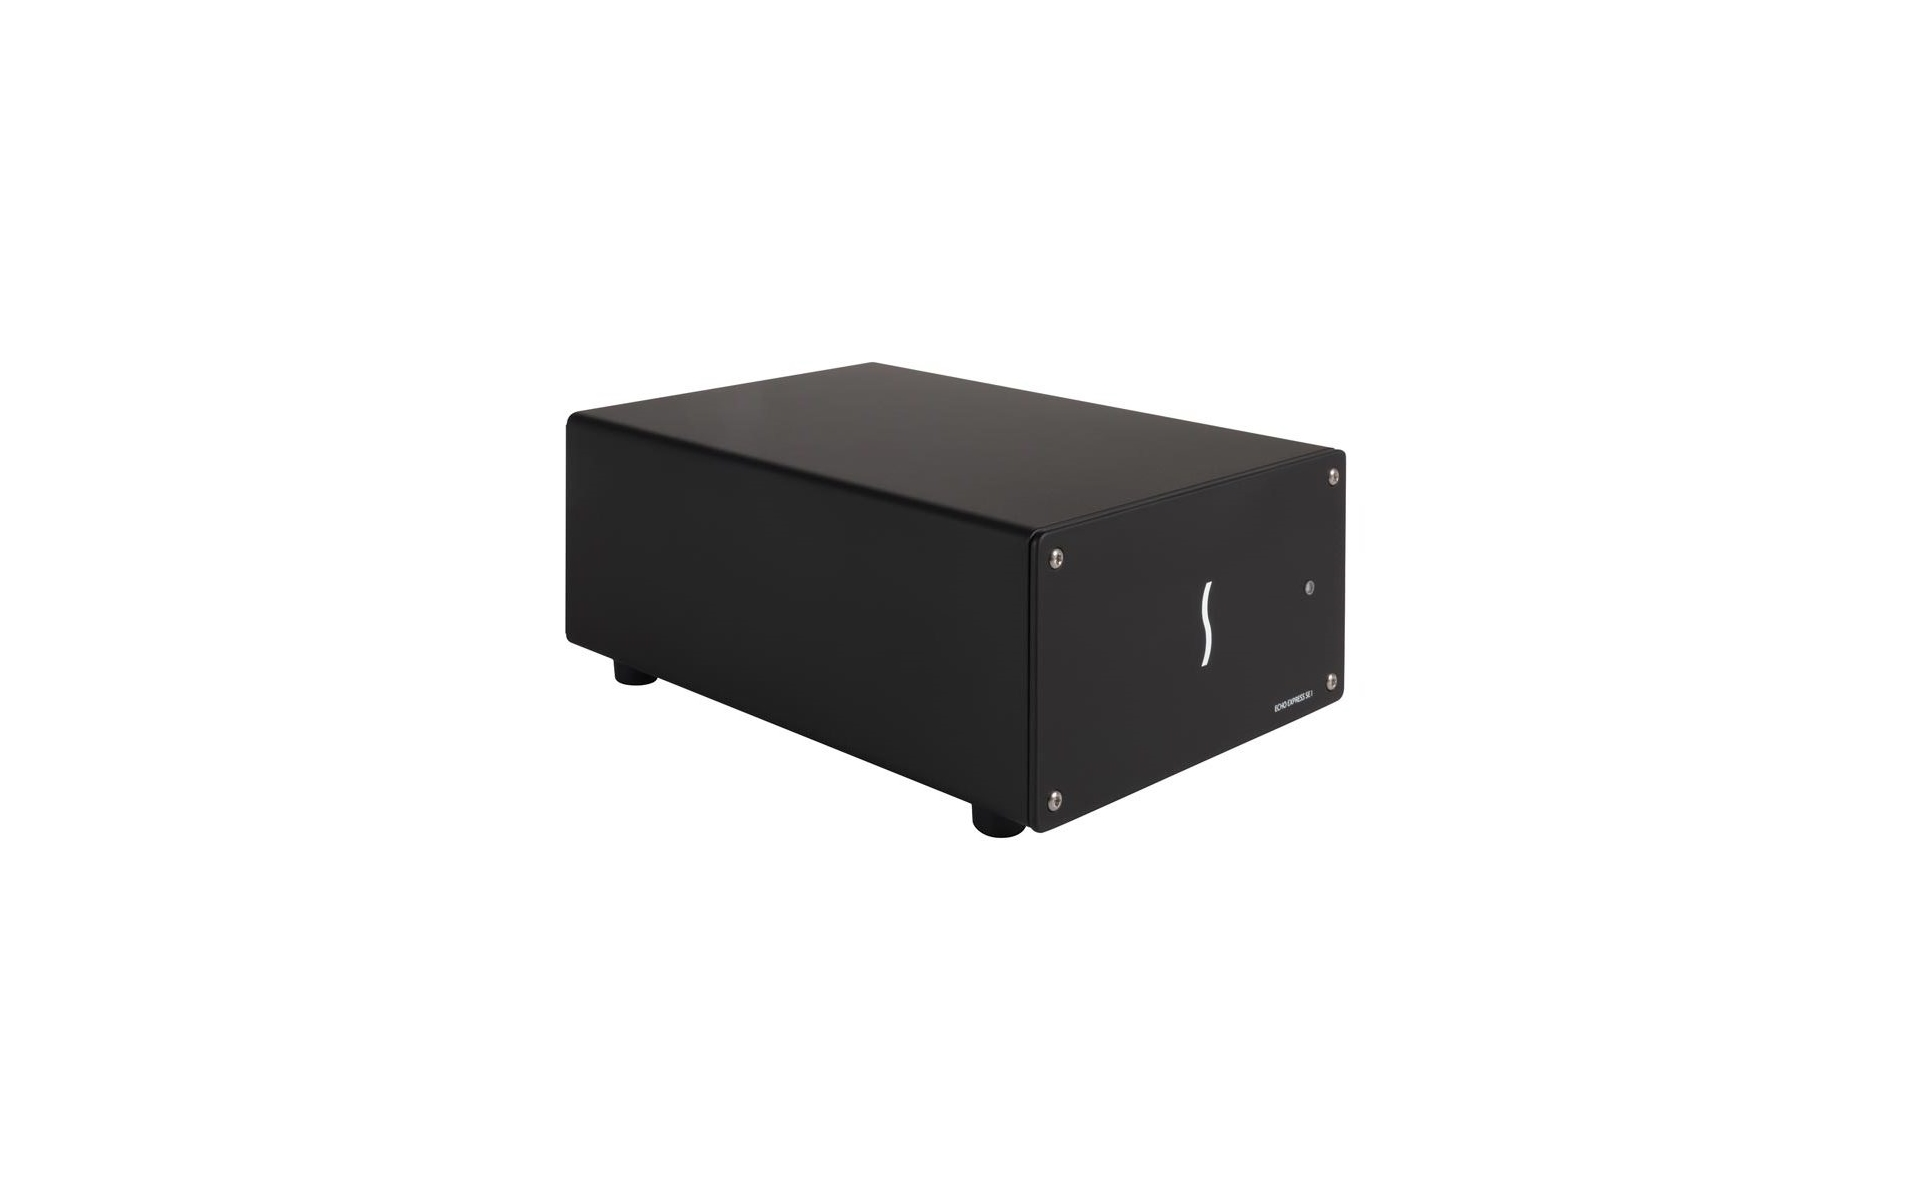 SONNET Echo Express SE1 Thunderbolt 3 to PCIE Expn Chassis (One slot)